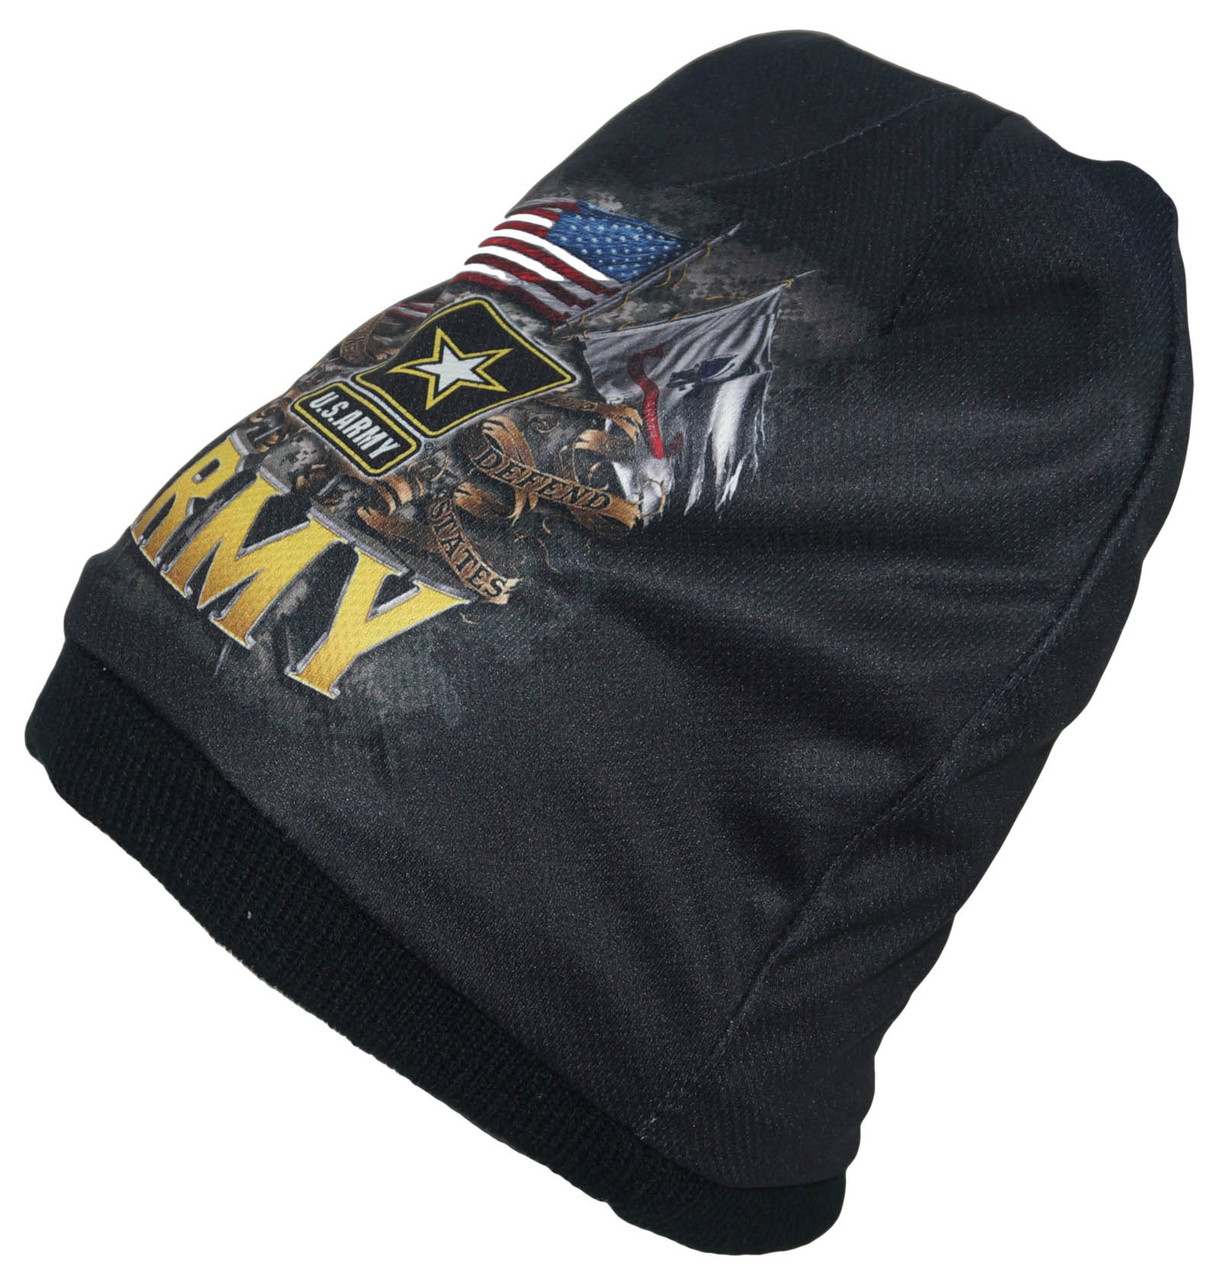 http://d3d71ba2asa5oz.cloudfront.net/12013655/images/amm-mm2151-er6%20army%20double%20flags%20beanie%20%20(1).jpg